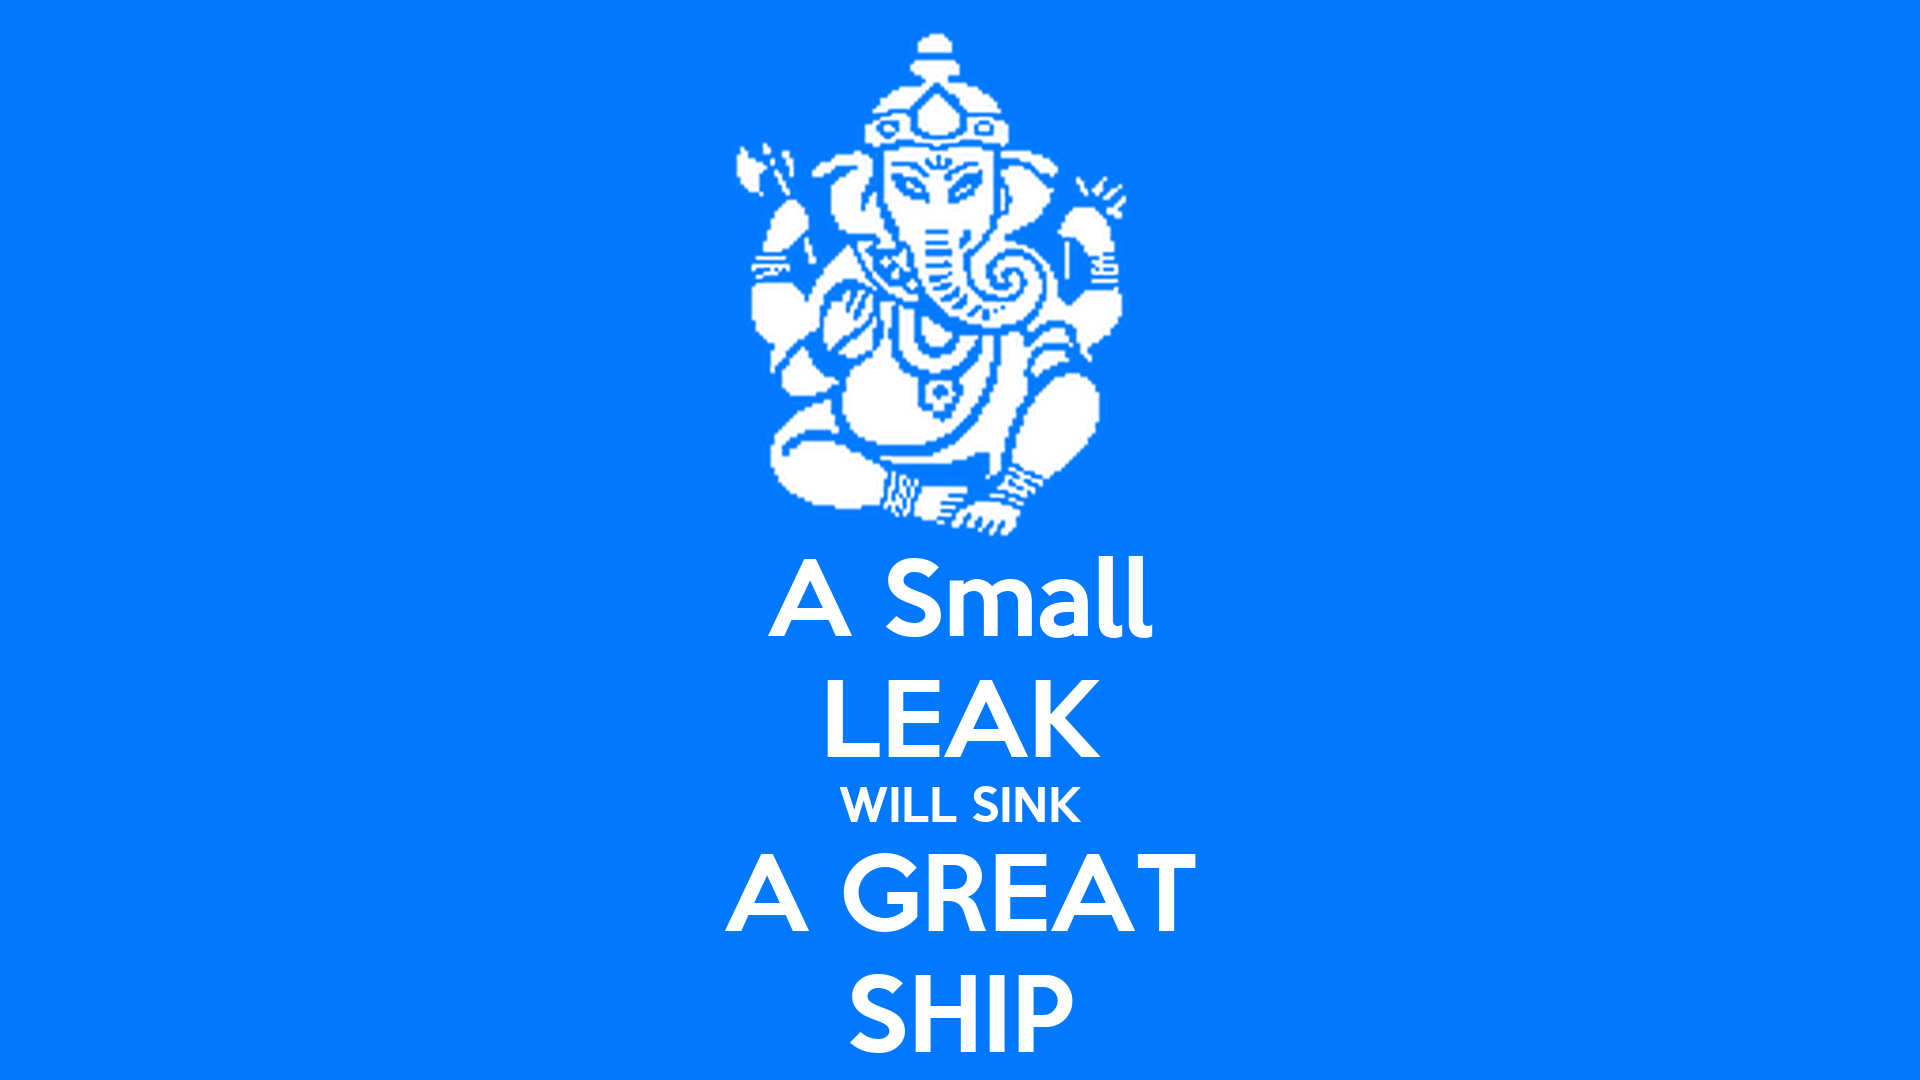 A small leak will sink a great ship.